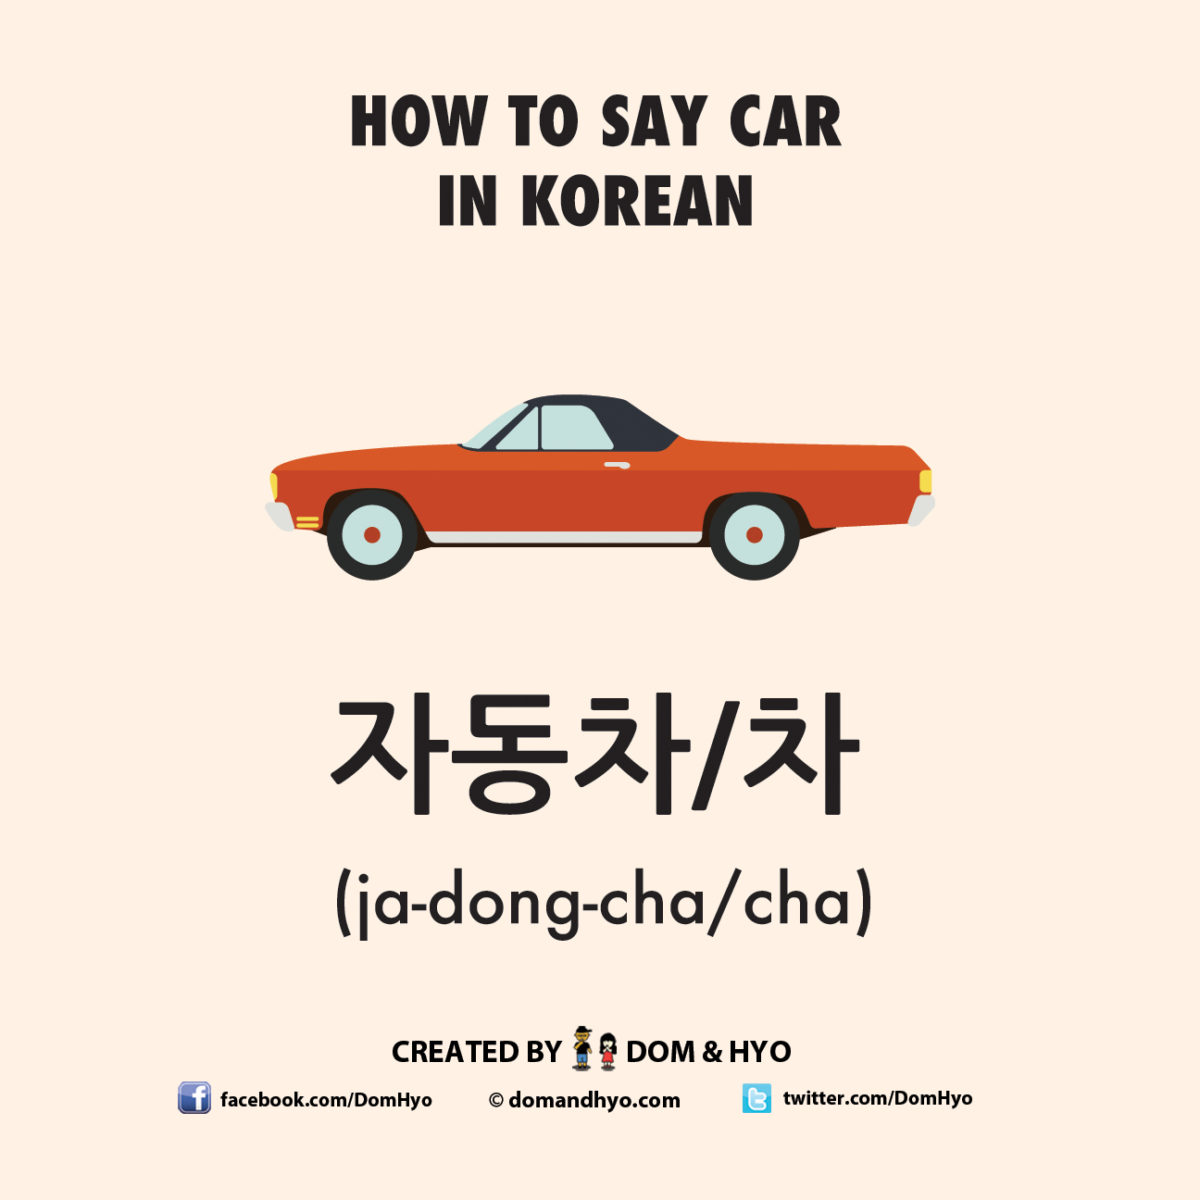 How to Say Car in Korean